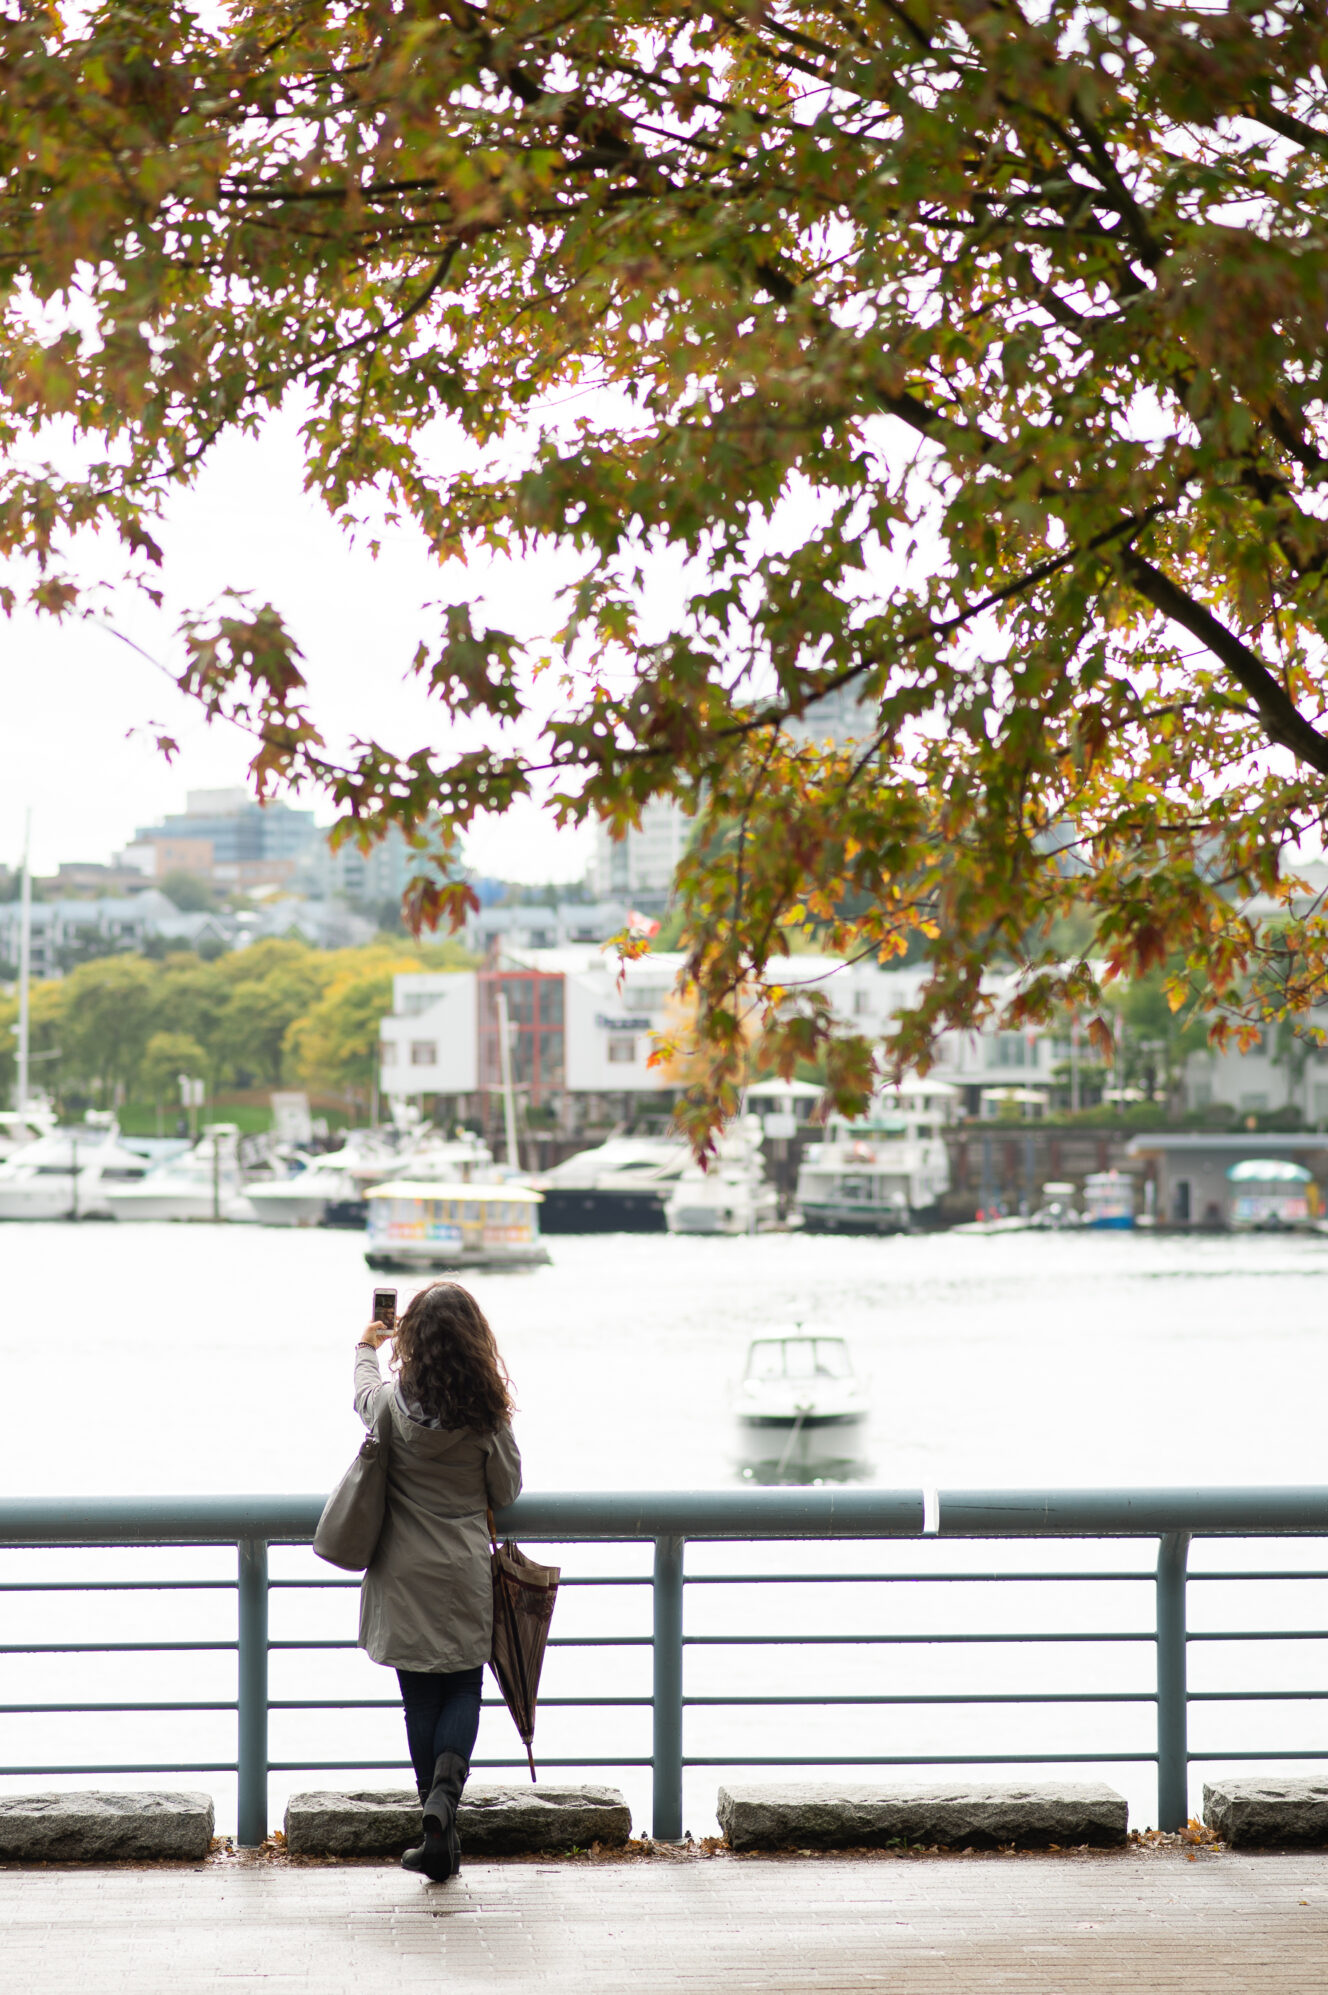 Woman taking photo during autumn in Vancouver